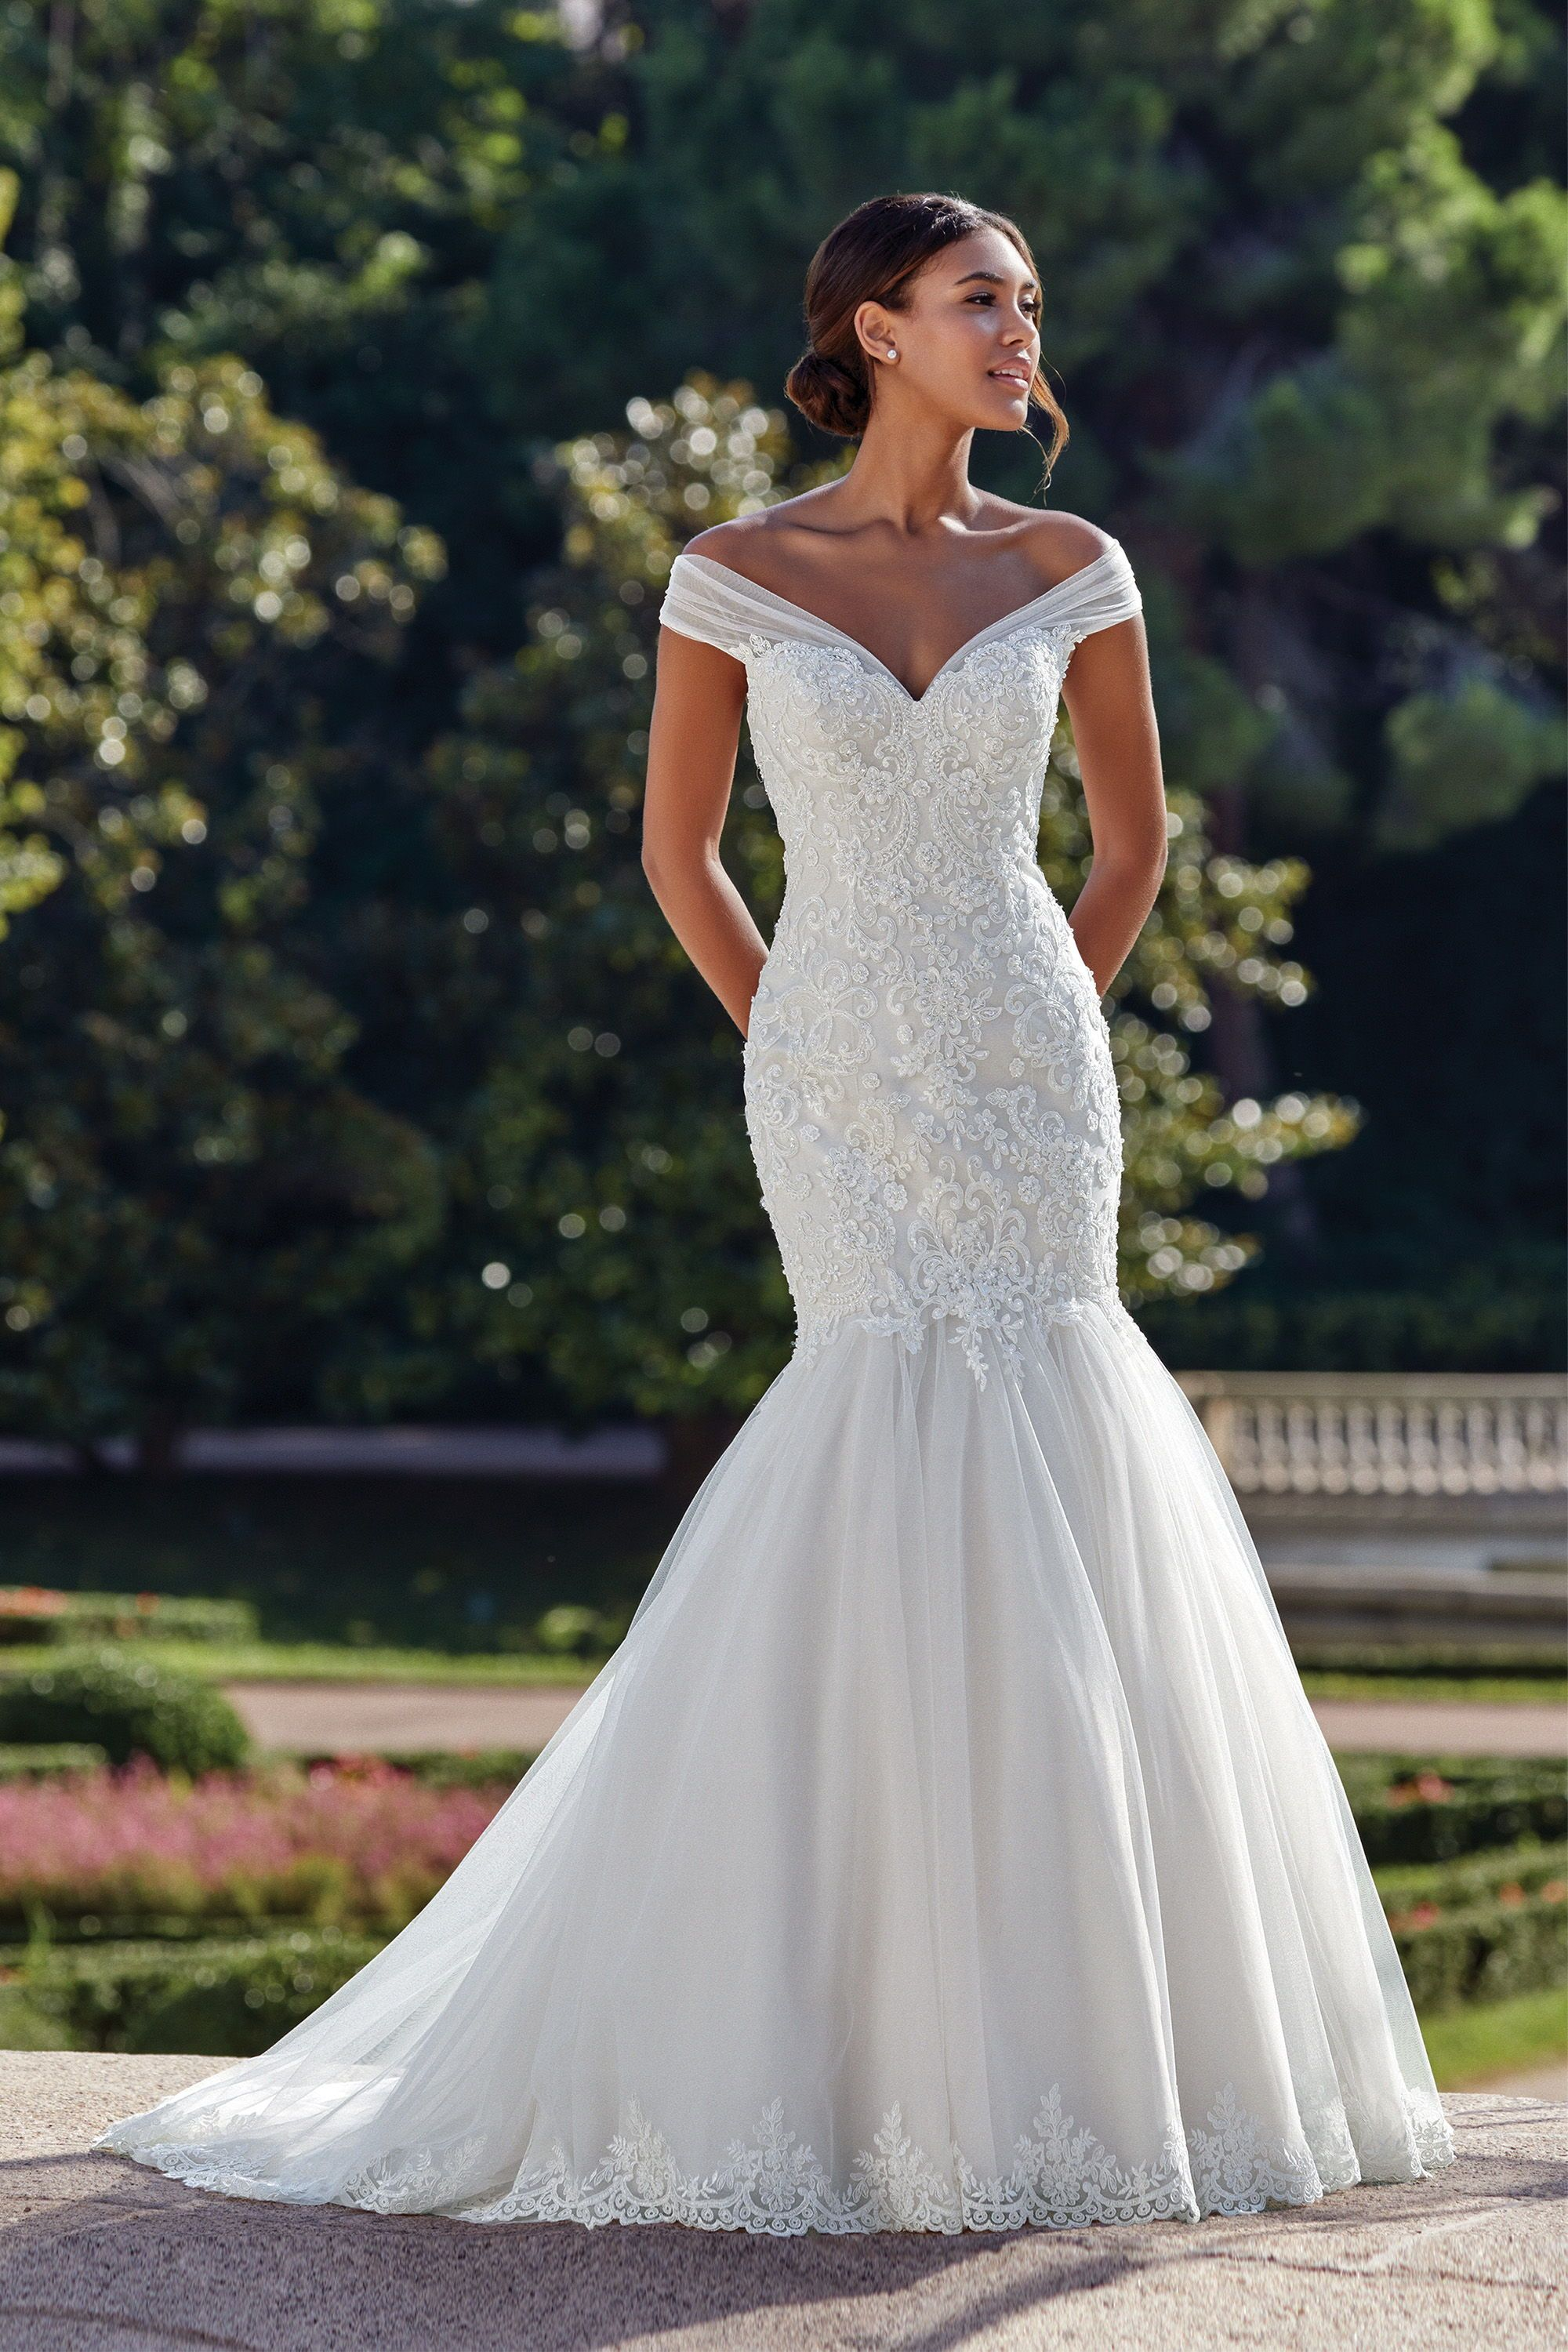 Sincerity 44148 Fit And Flare Wedding Gown Beaded Lace Bodice With A Tulle Fishtail Skirt Wedding Dresses Fit And Flare Wedding Dress Wedding Dress Trends [ 3000 x 2000 Pixel ]